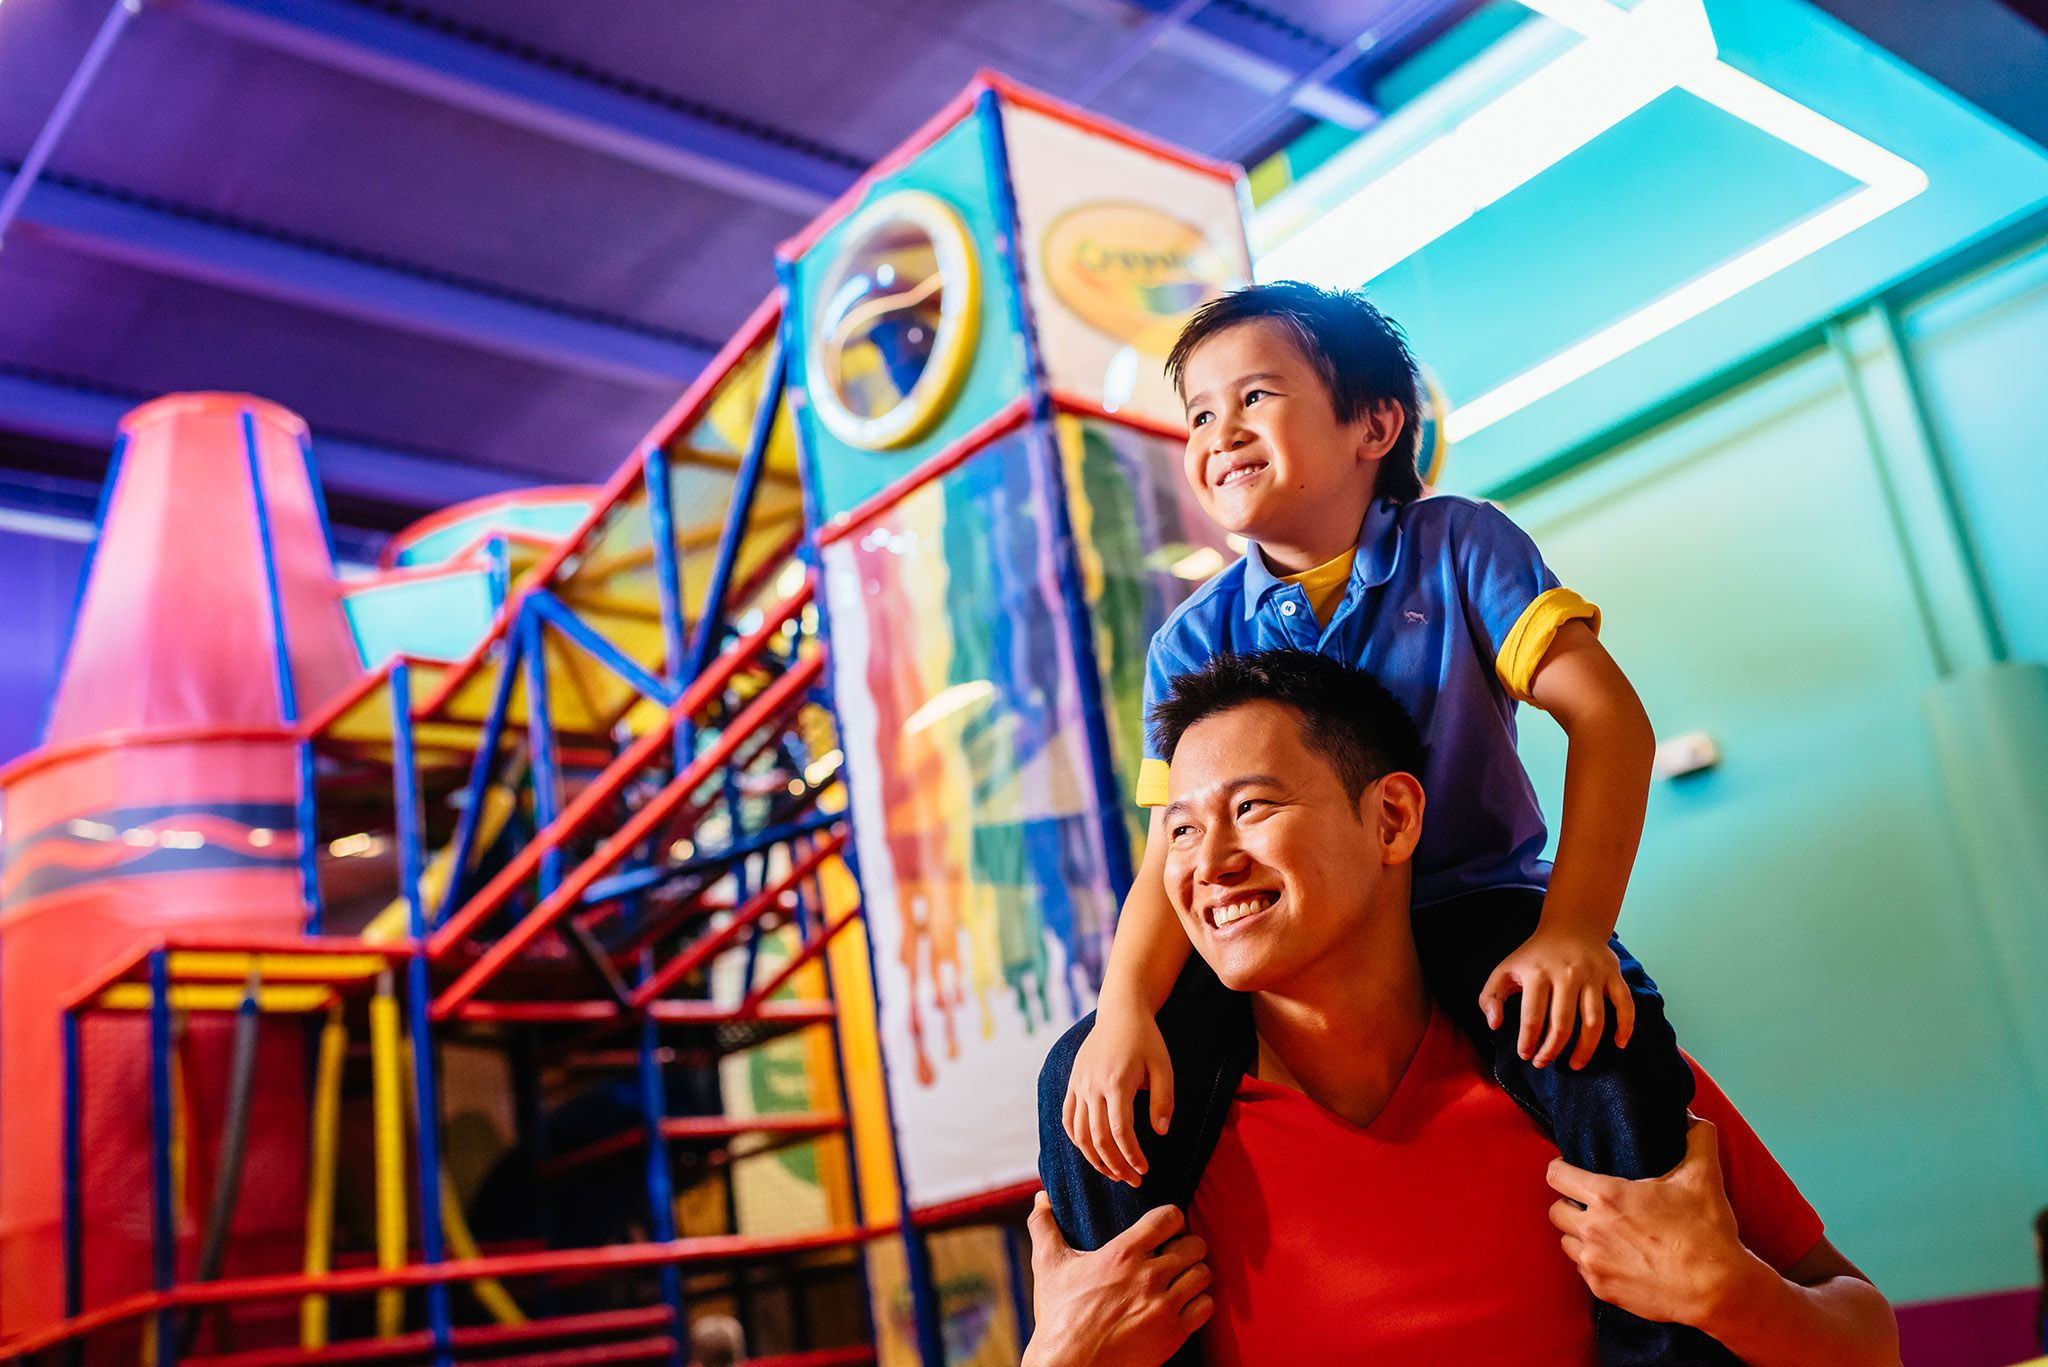 A little boy rides on the shoulders of a man as they explore Crayola Experience Orlando.